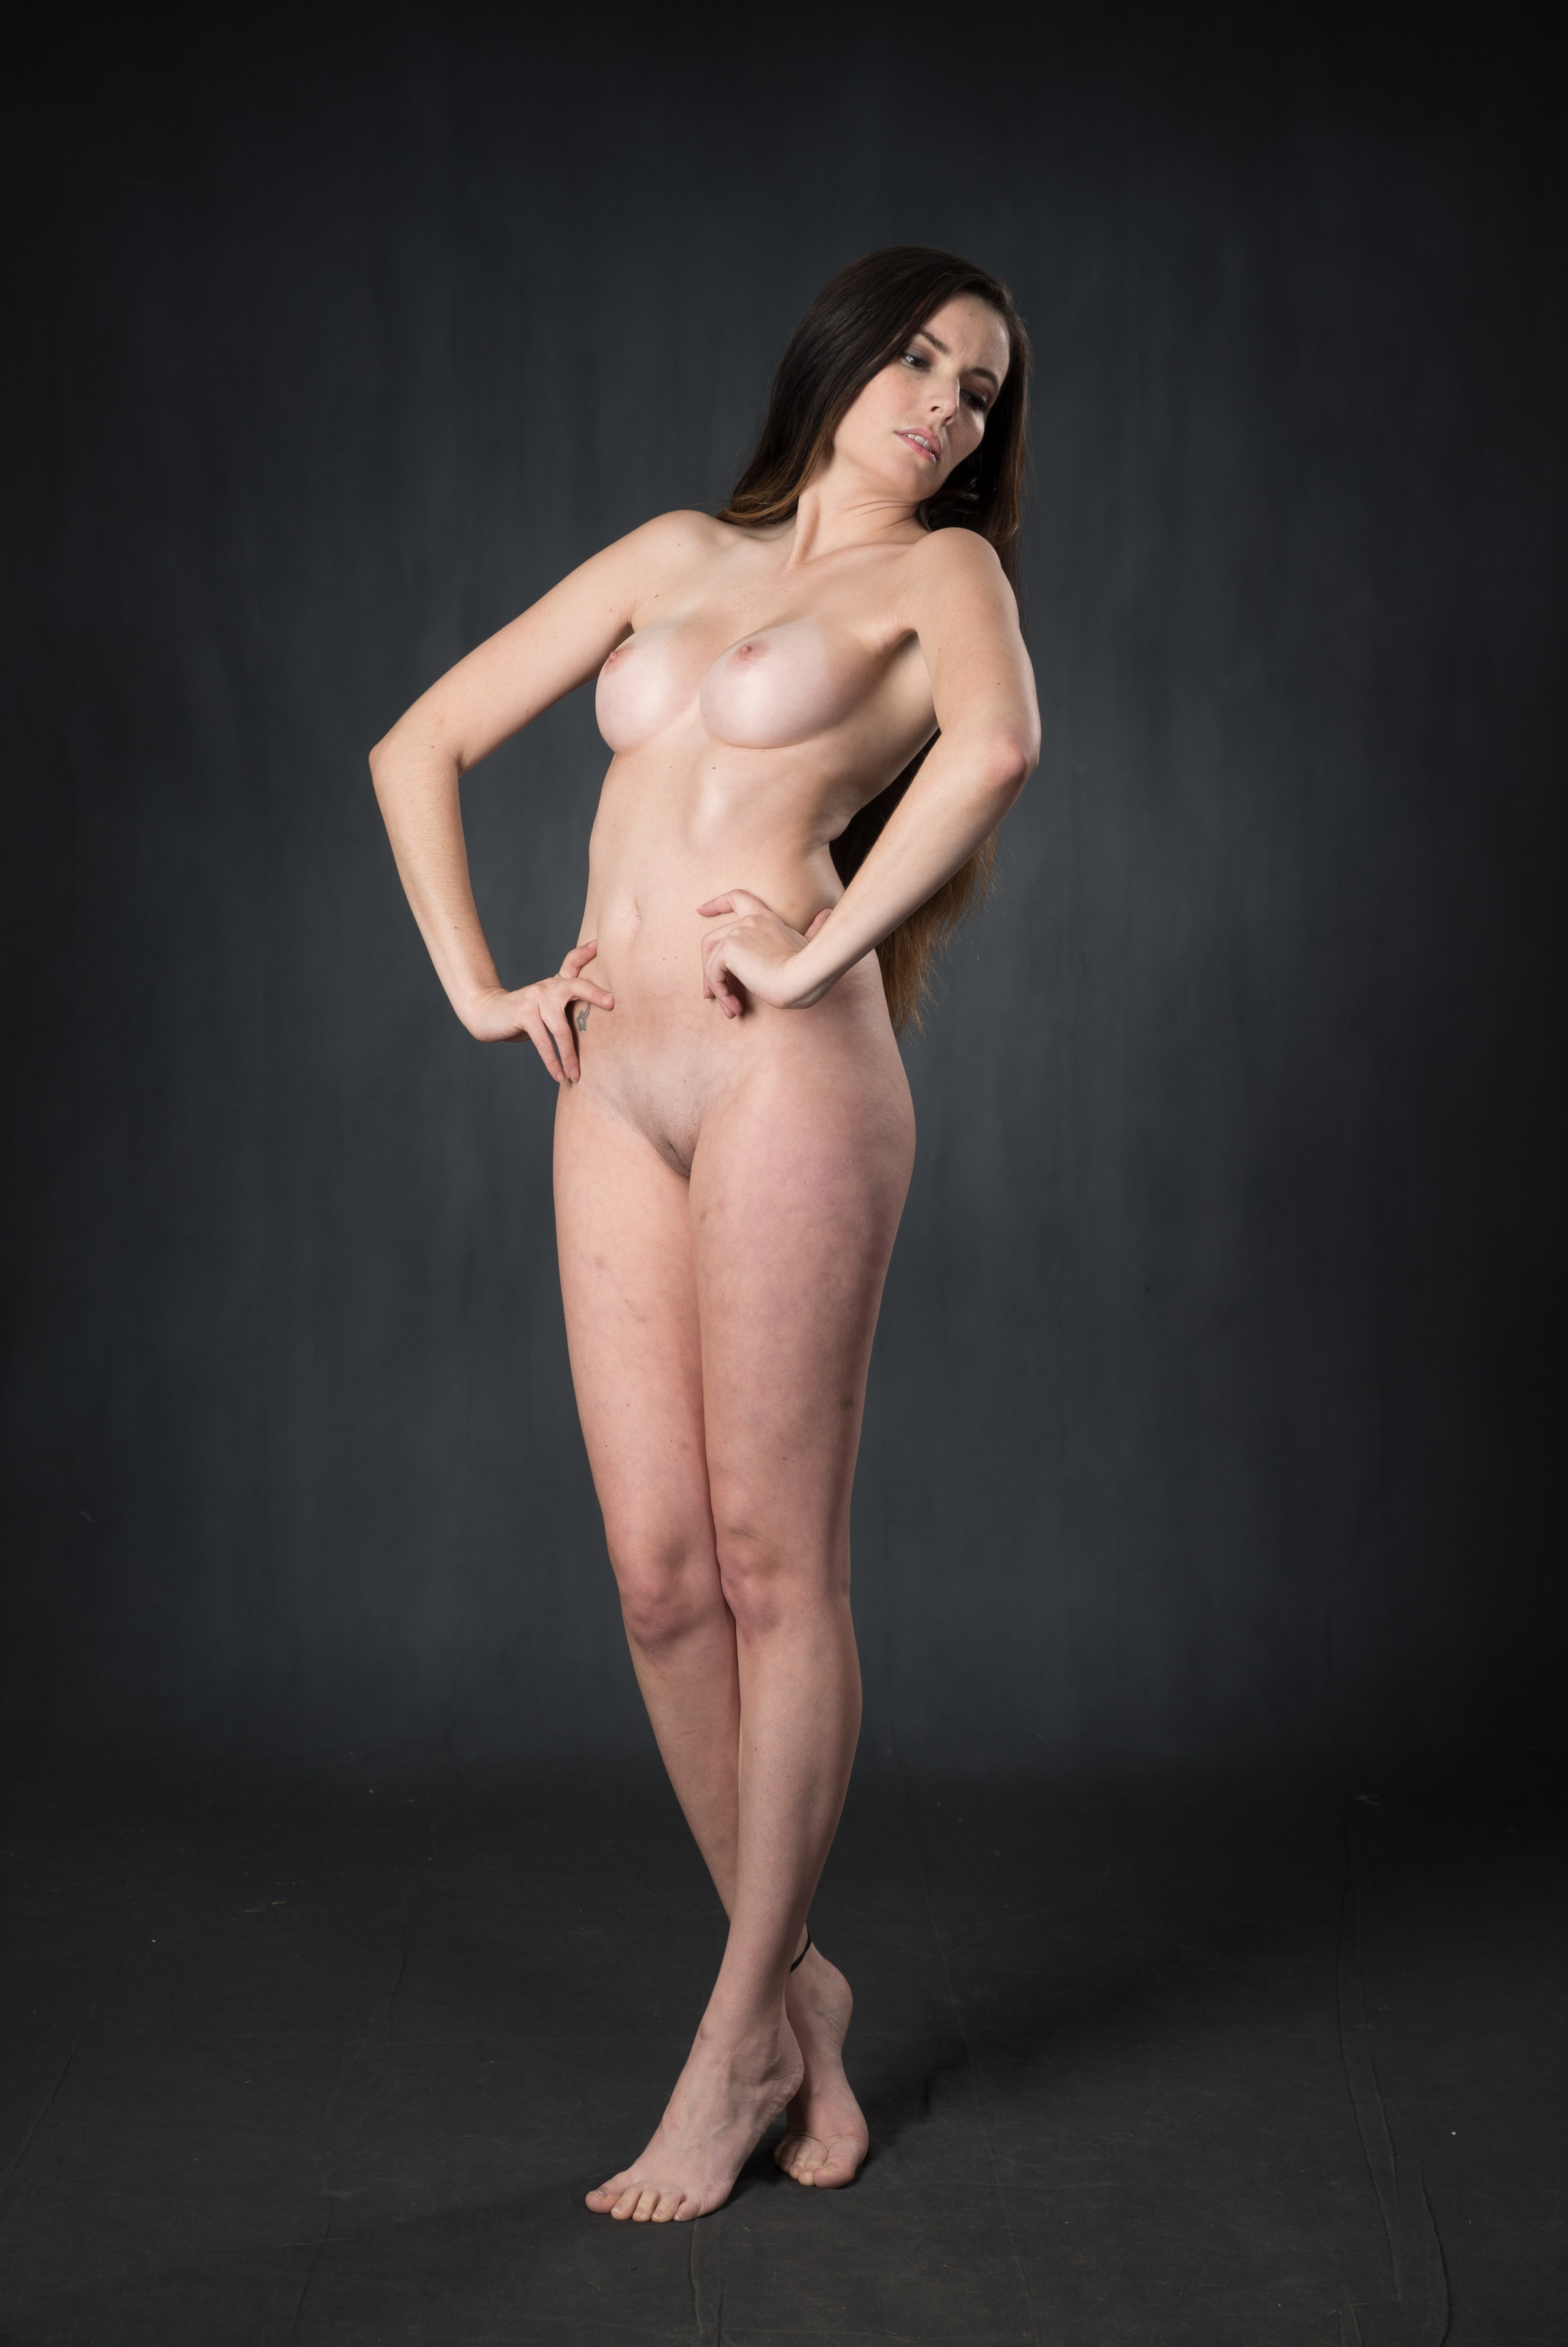 Nude Standing Poses 32